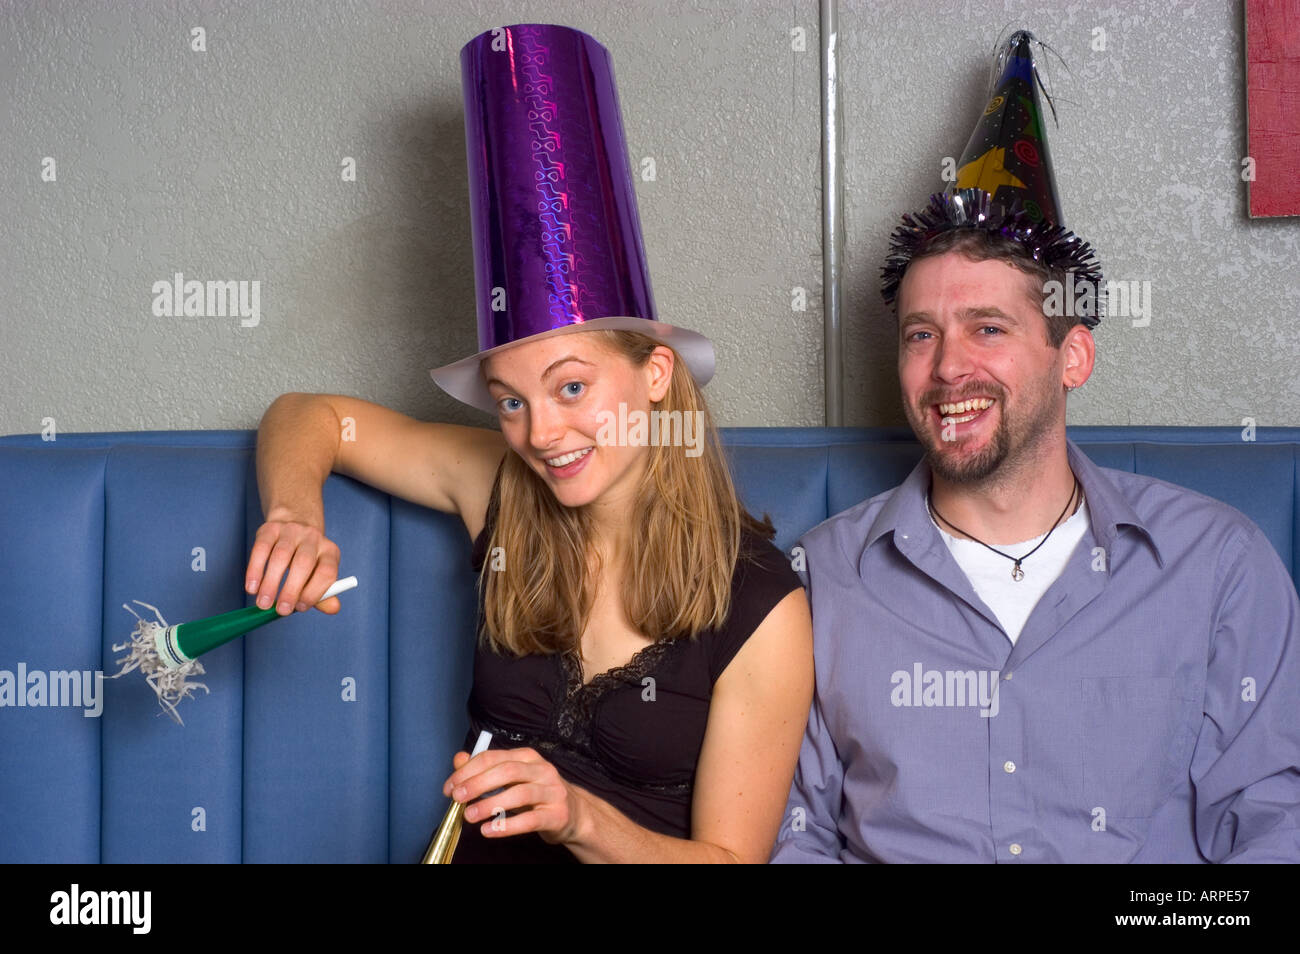 Two young people in party hats with noisemakers looking at camera. - Stock Image